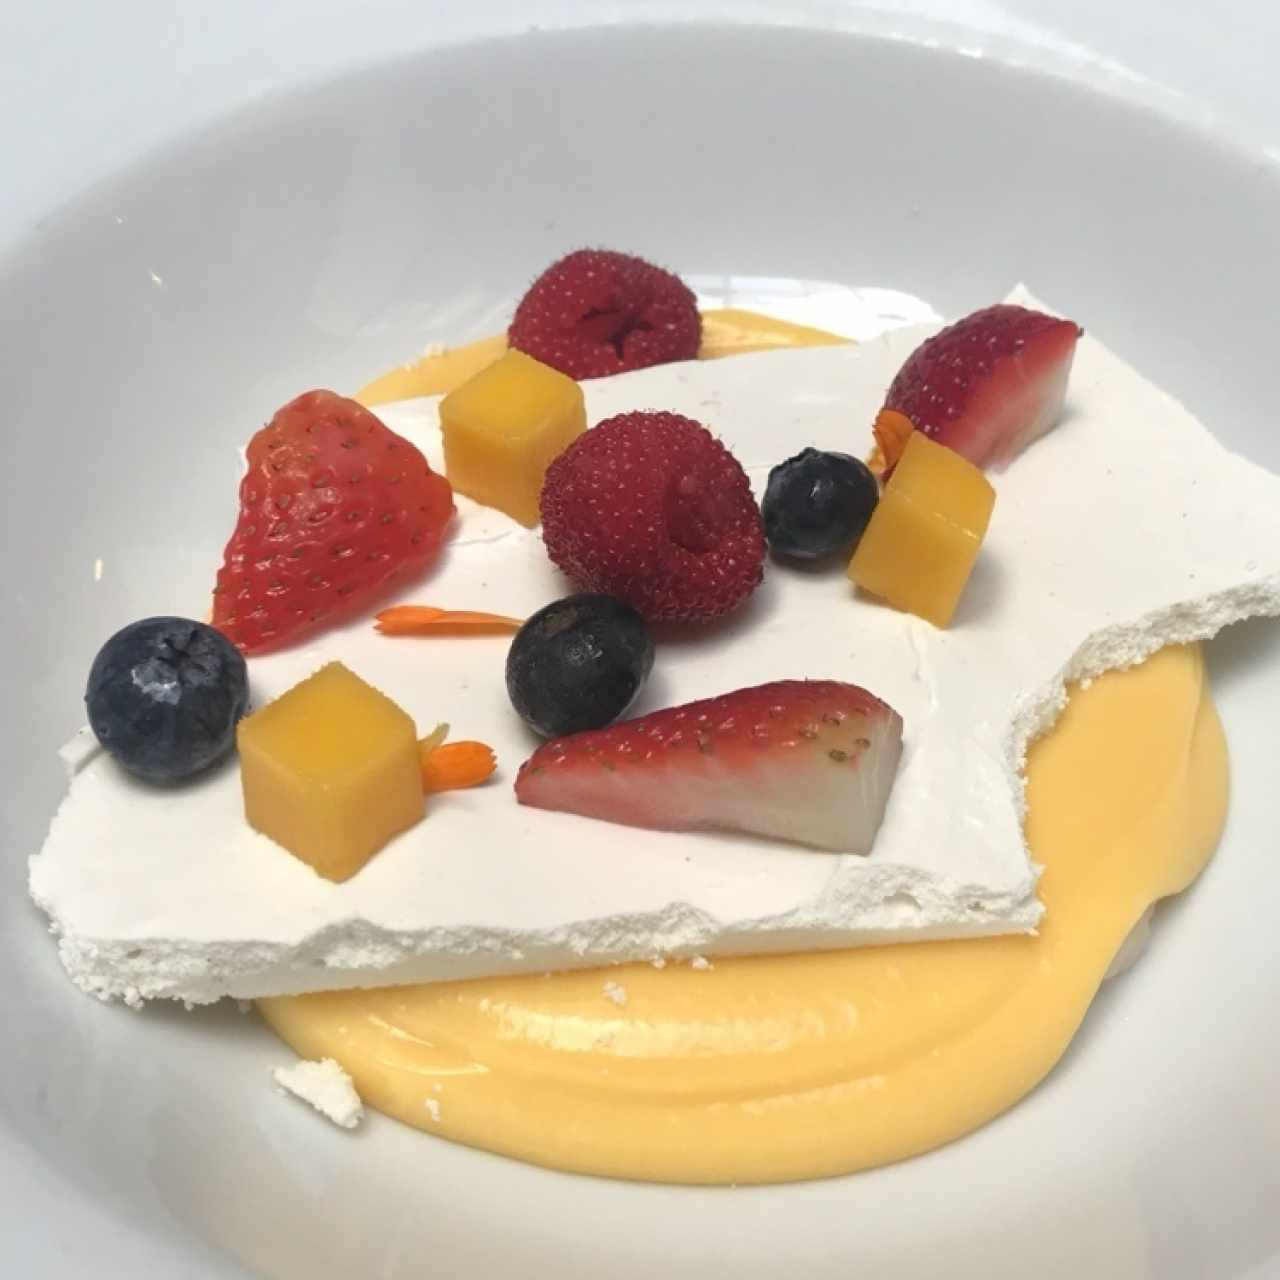 postre de merengue con frutos!